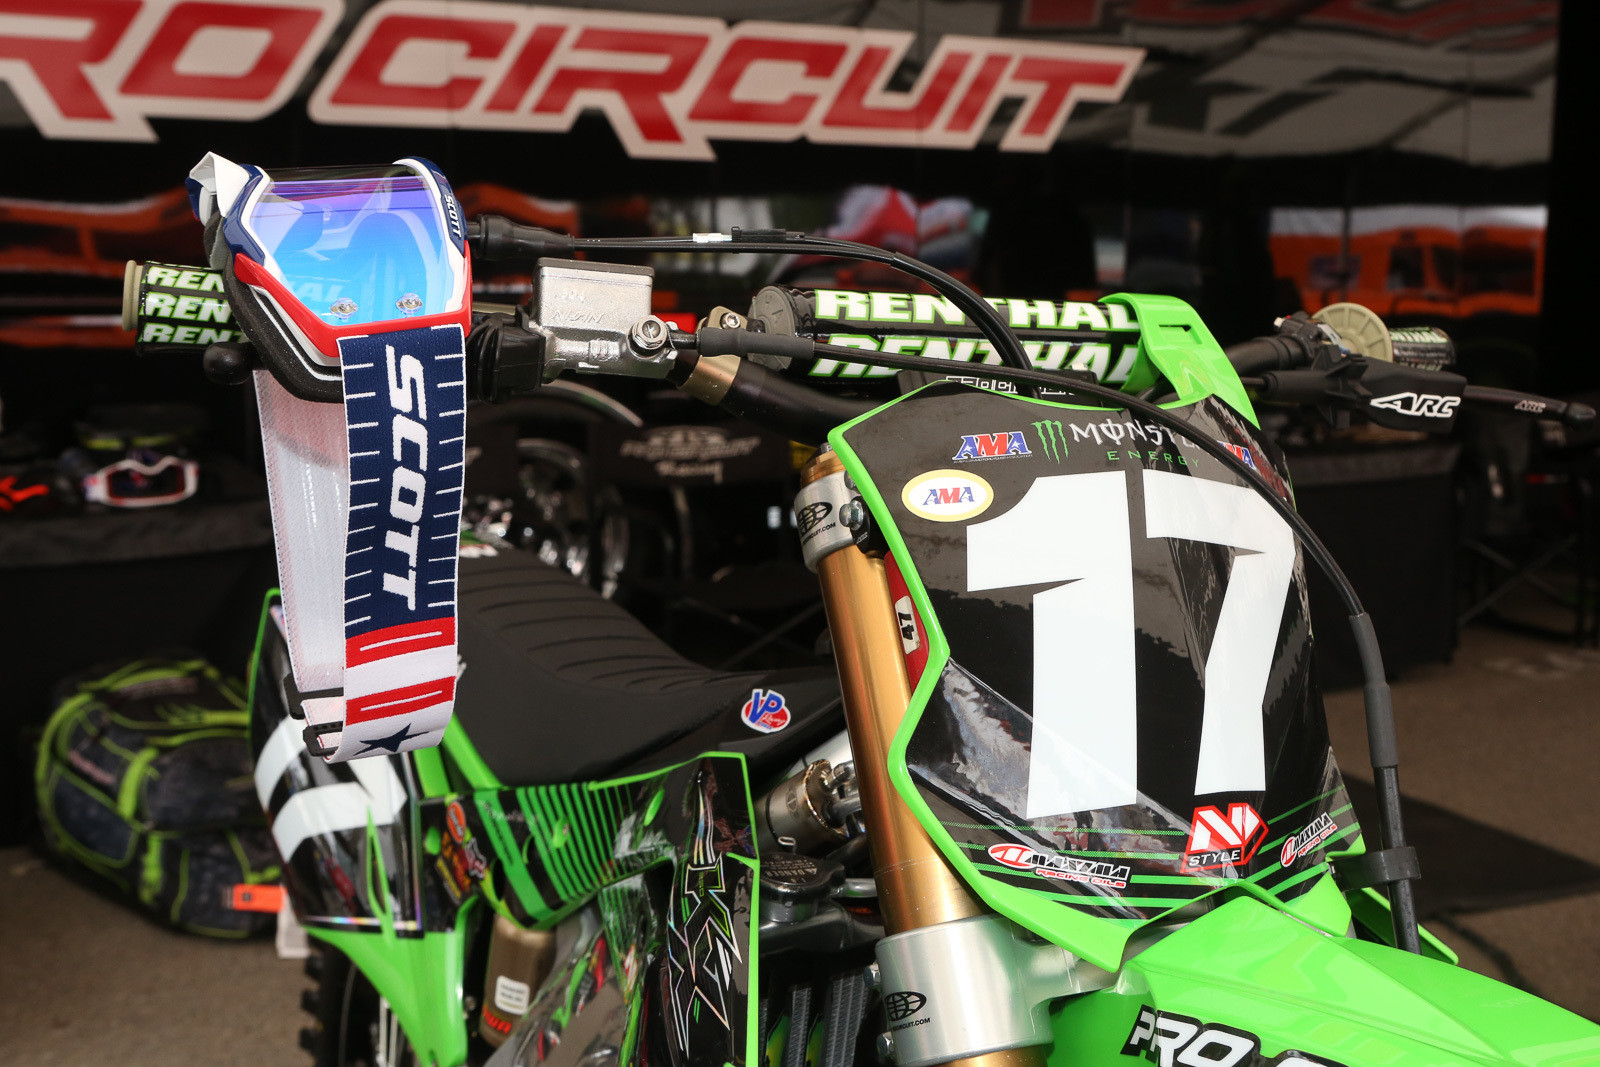 Scott did some really cool red/white/blue goggles for this weekend.